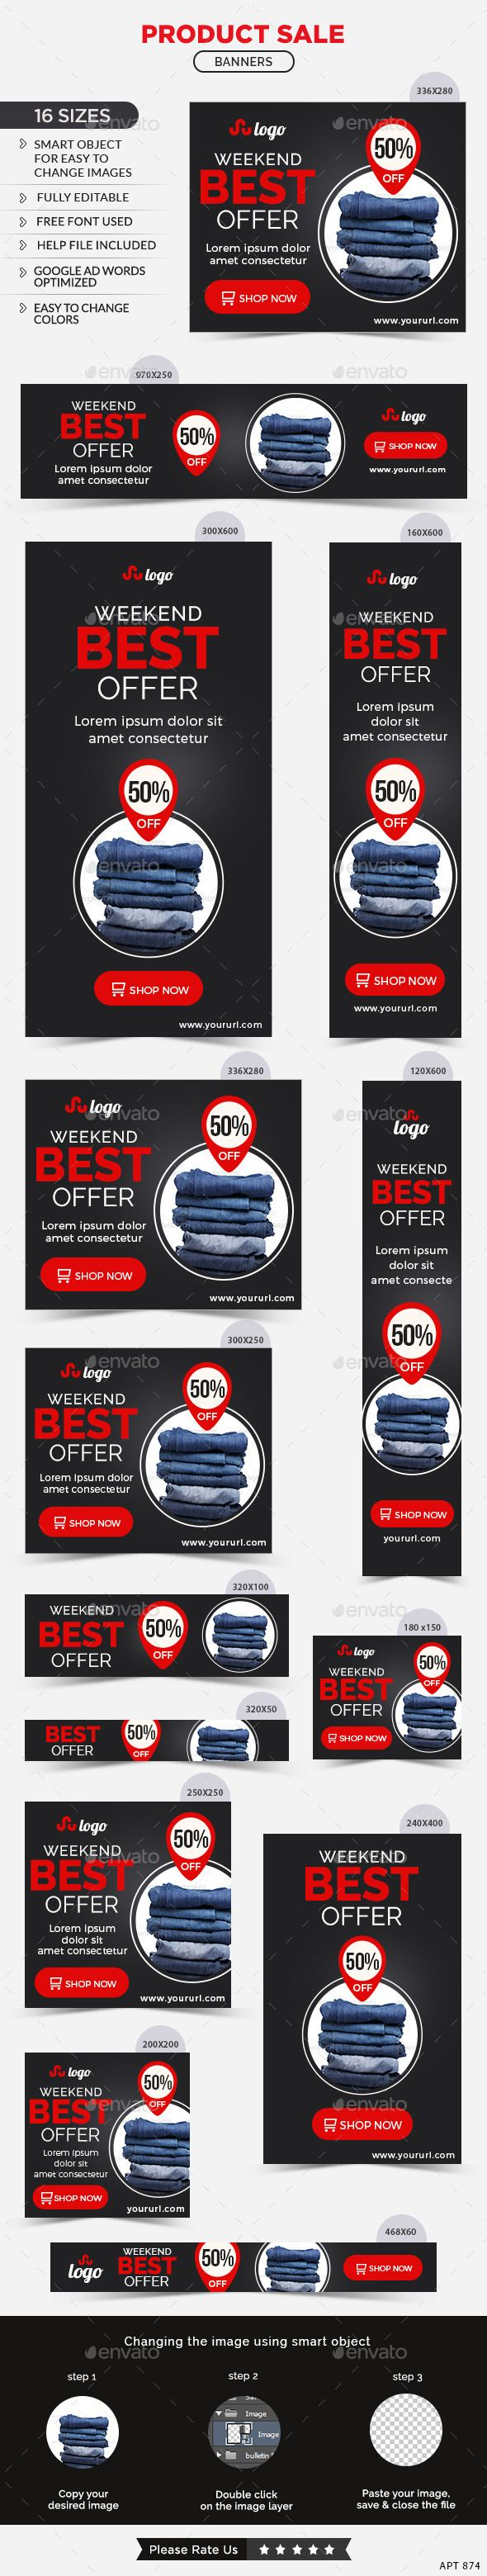 Product Sale Web Banners Template #design #ads Download: http://graphicriver.net/item/product-sale-banners/12802298?ref=ksioks